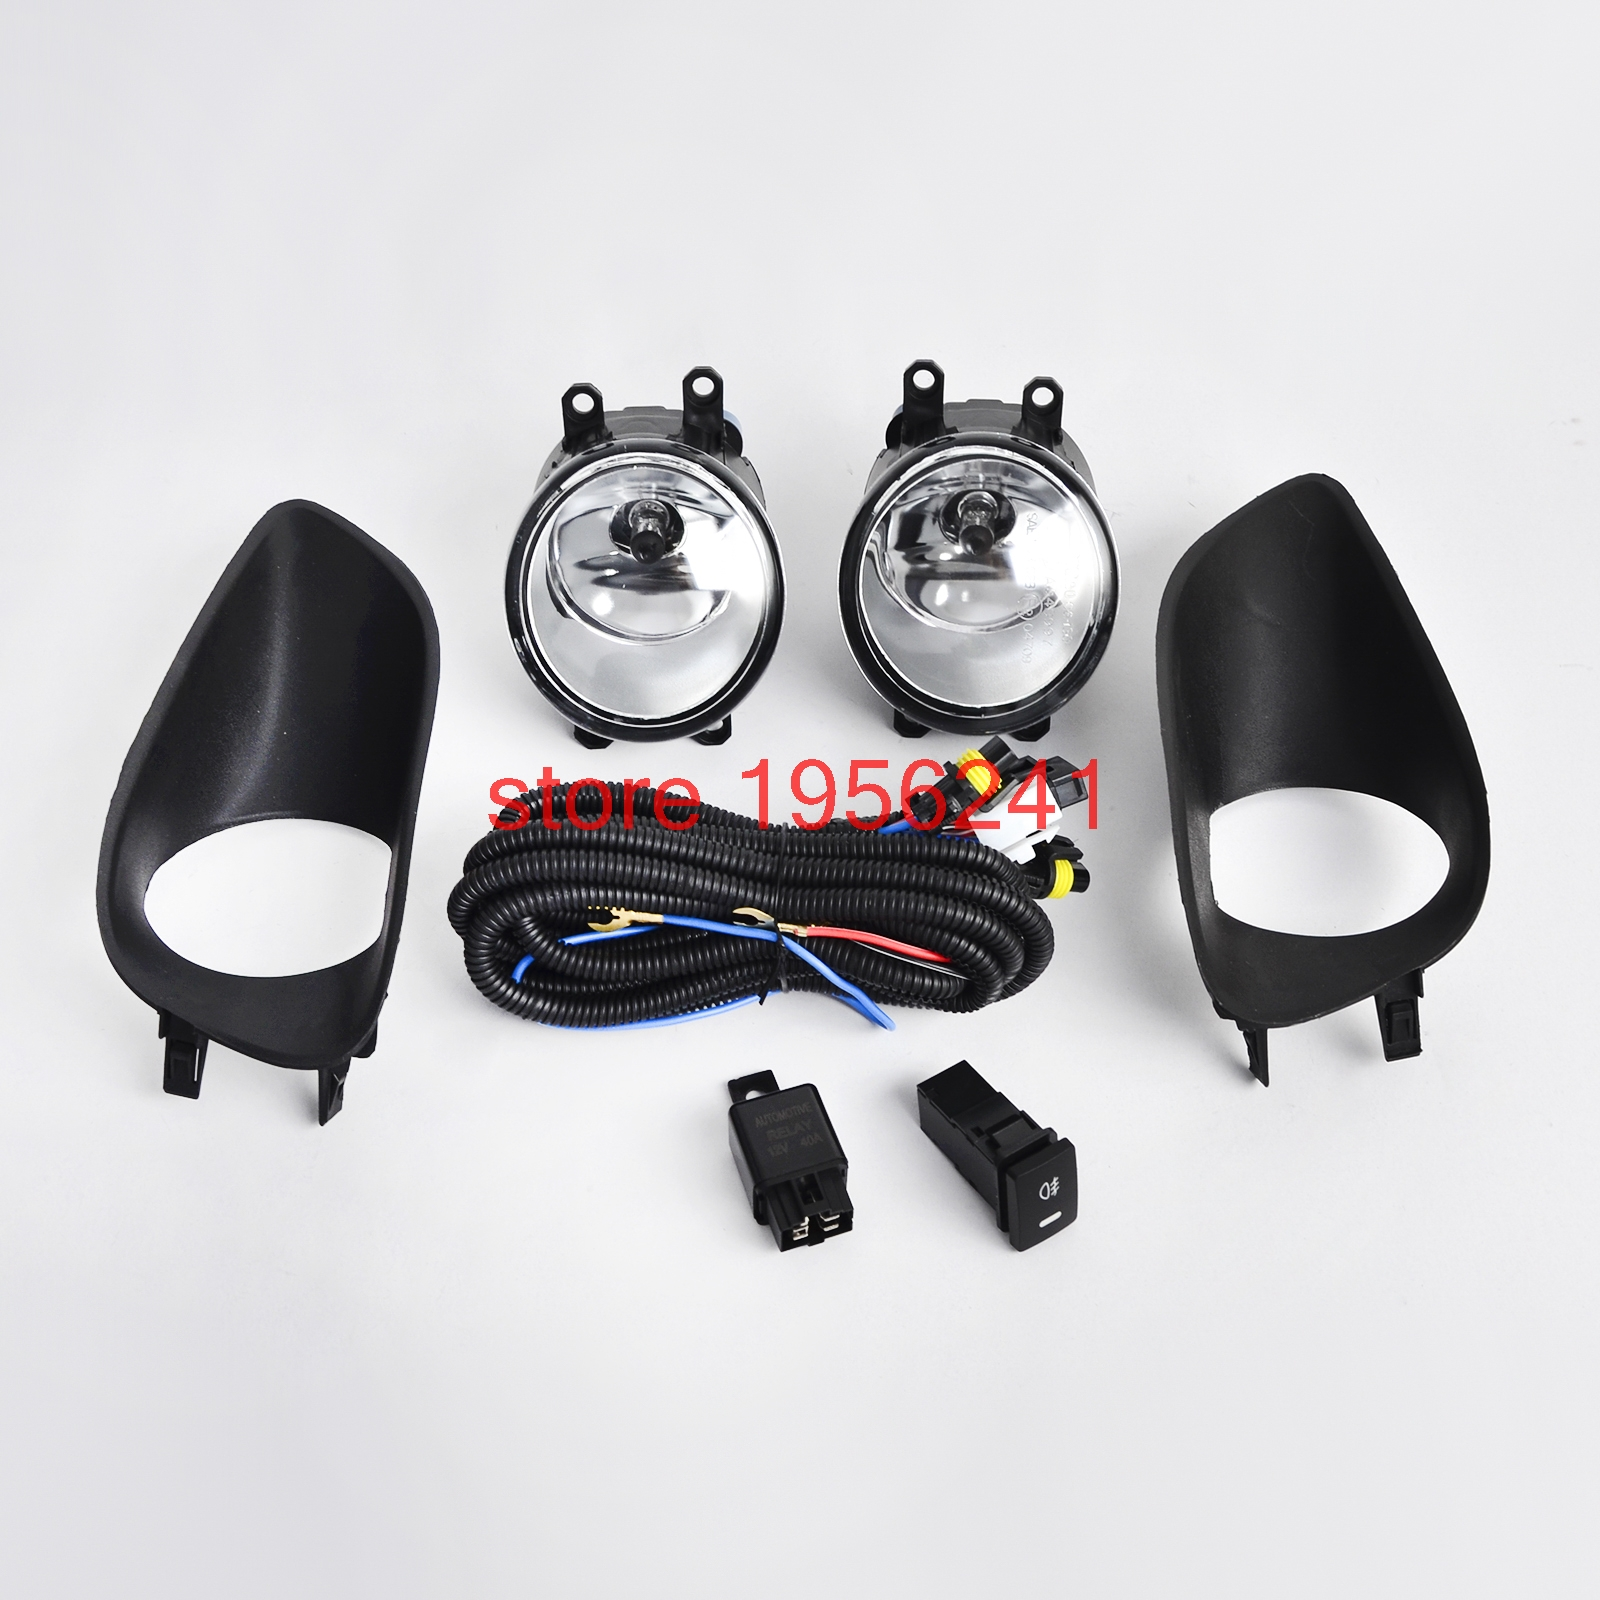 H2CNC 1 Pair Front Bumper Fog Light Clear & Switch Wiring Harness For Toyota Yaris S/Base 2006-2011 Sedan 4-Door